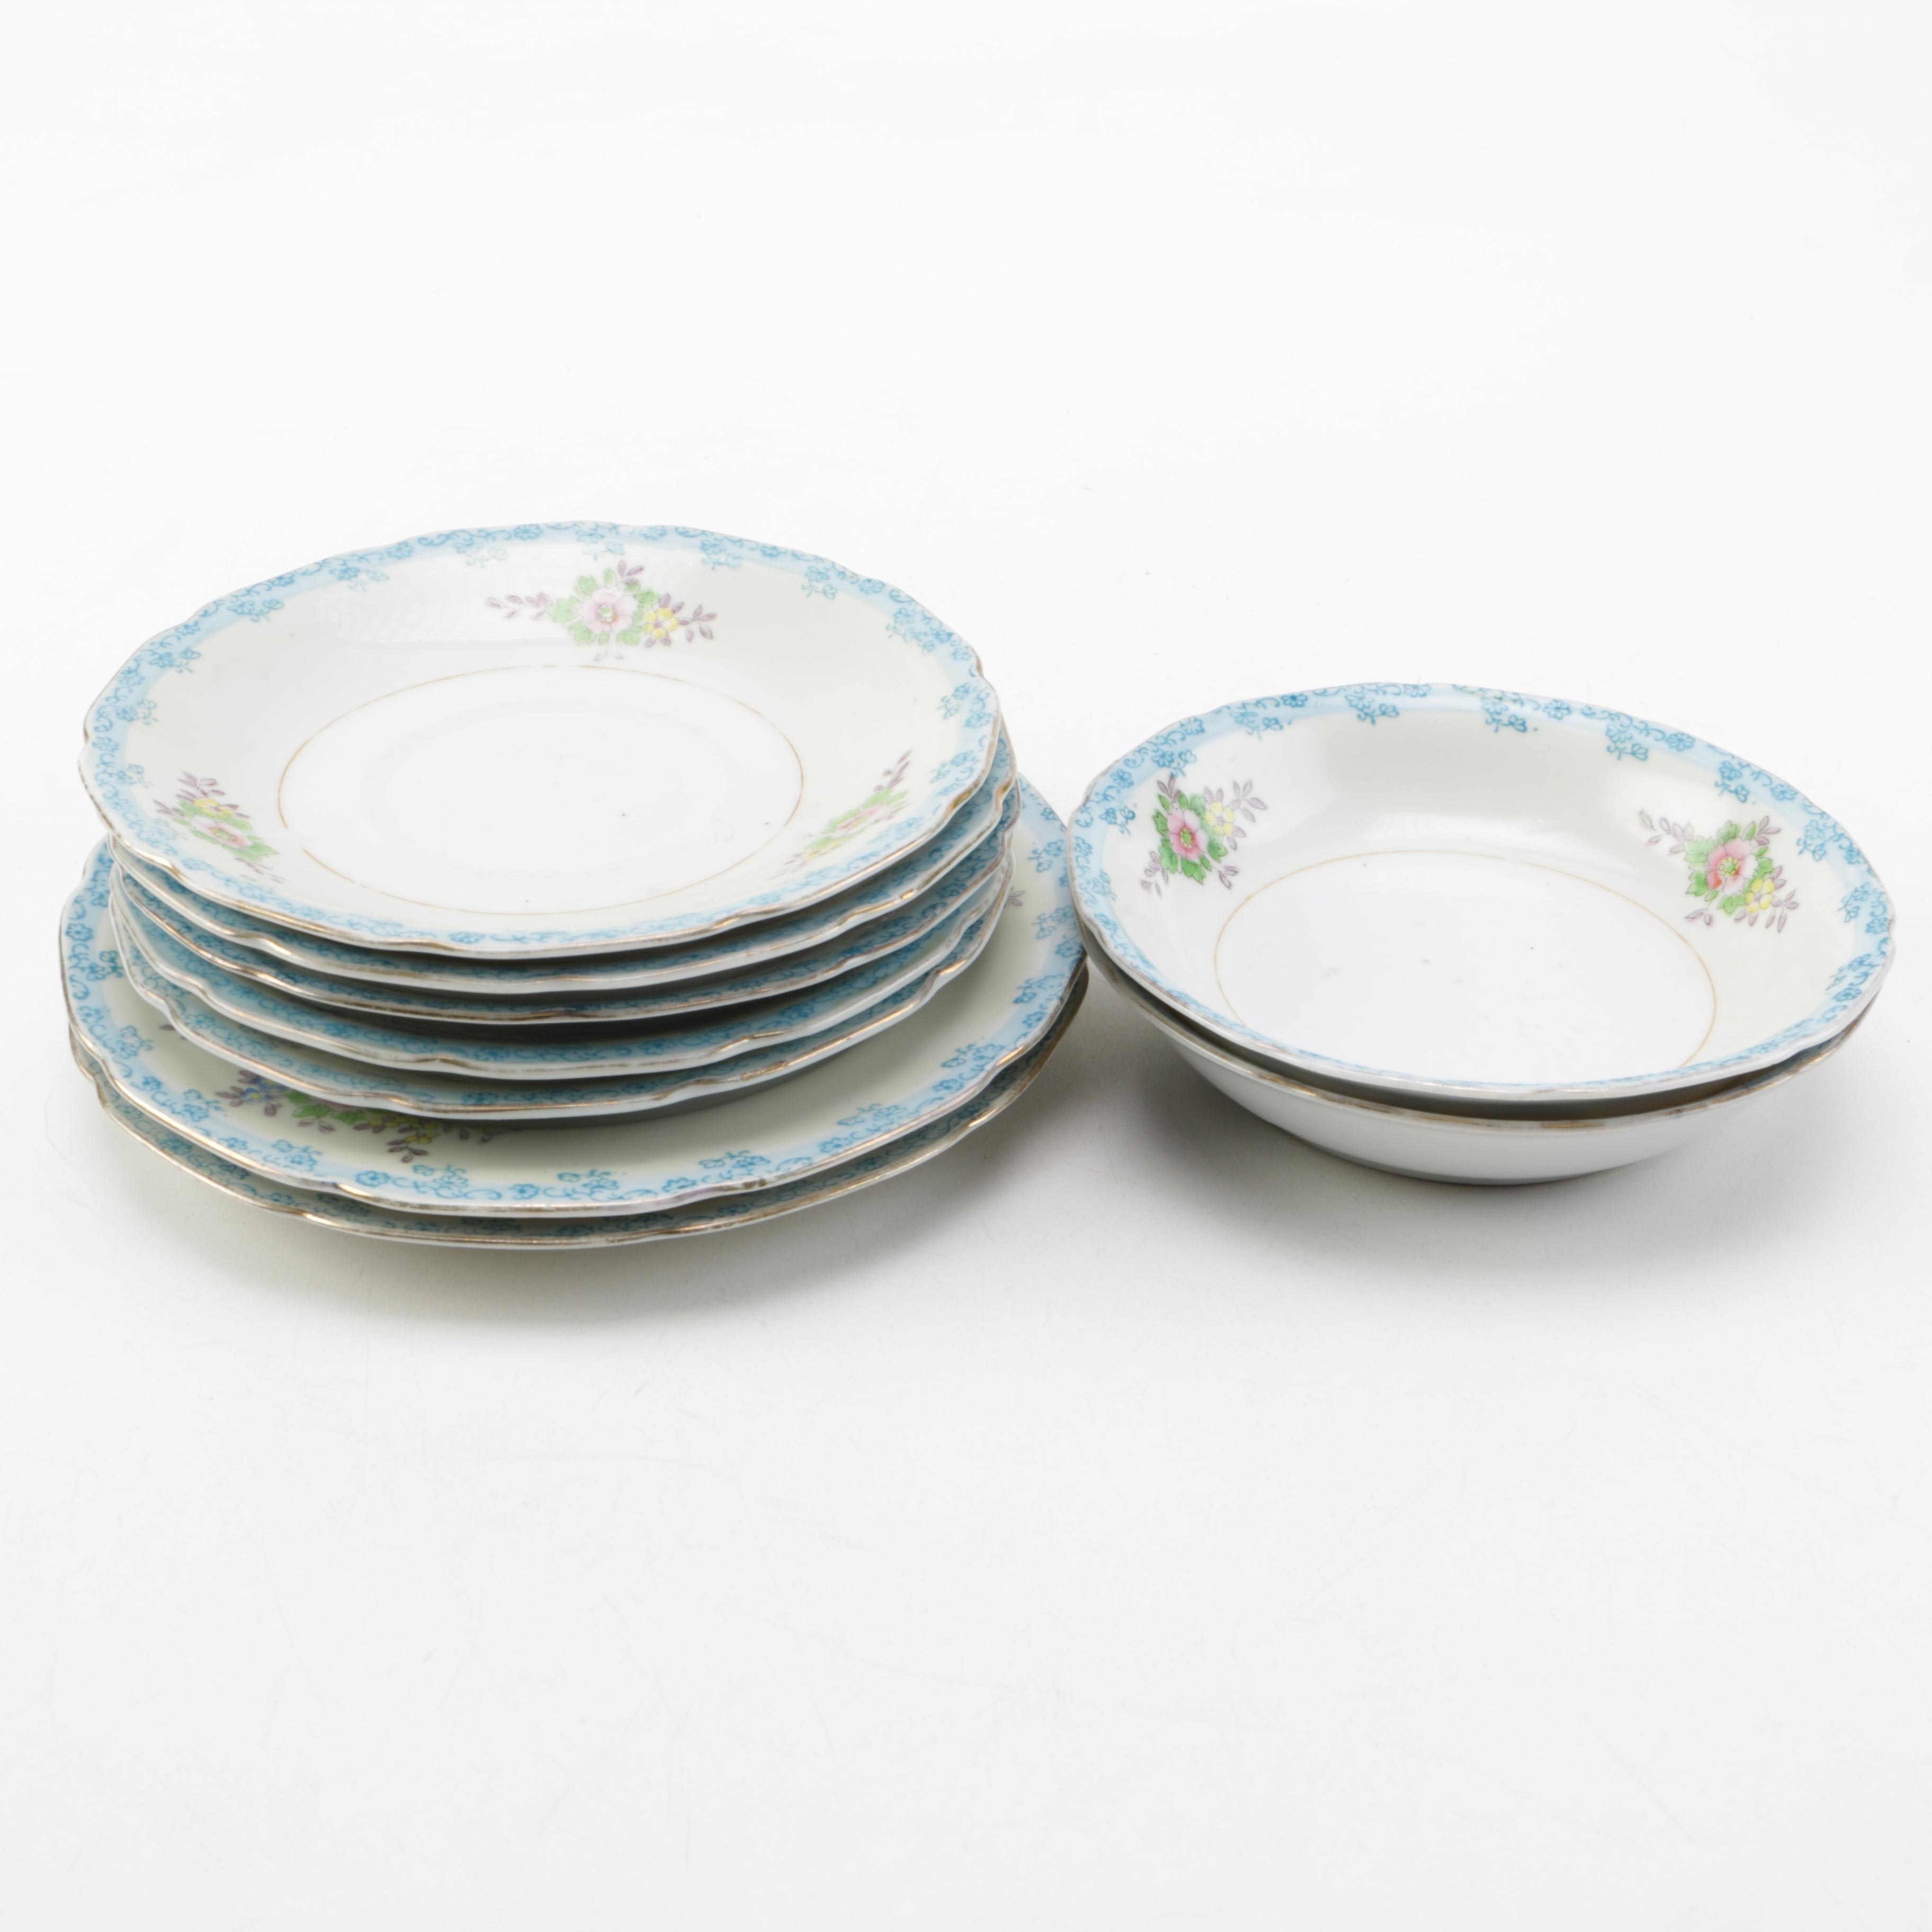 Trico Matching Hand Painted Pattern Porcelain Kitchenware